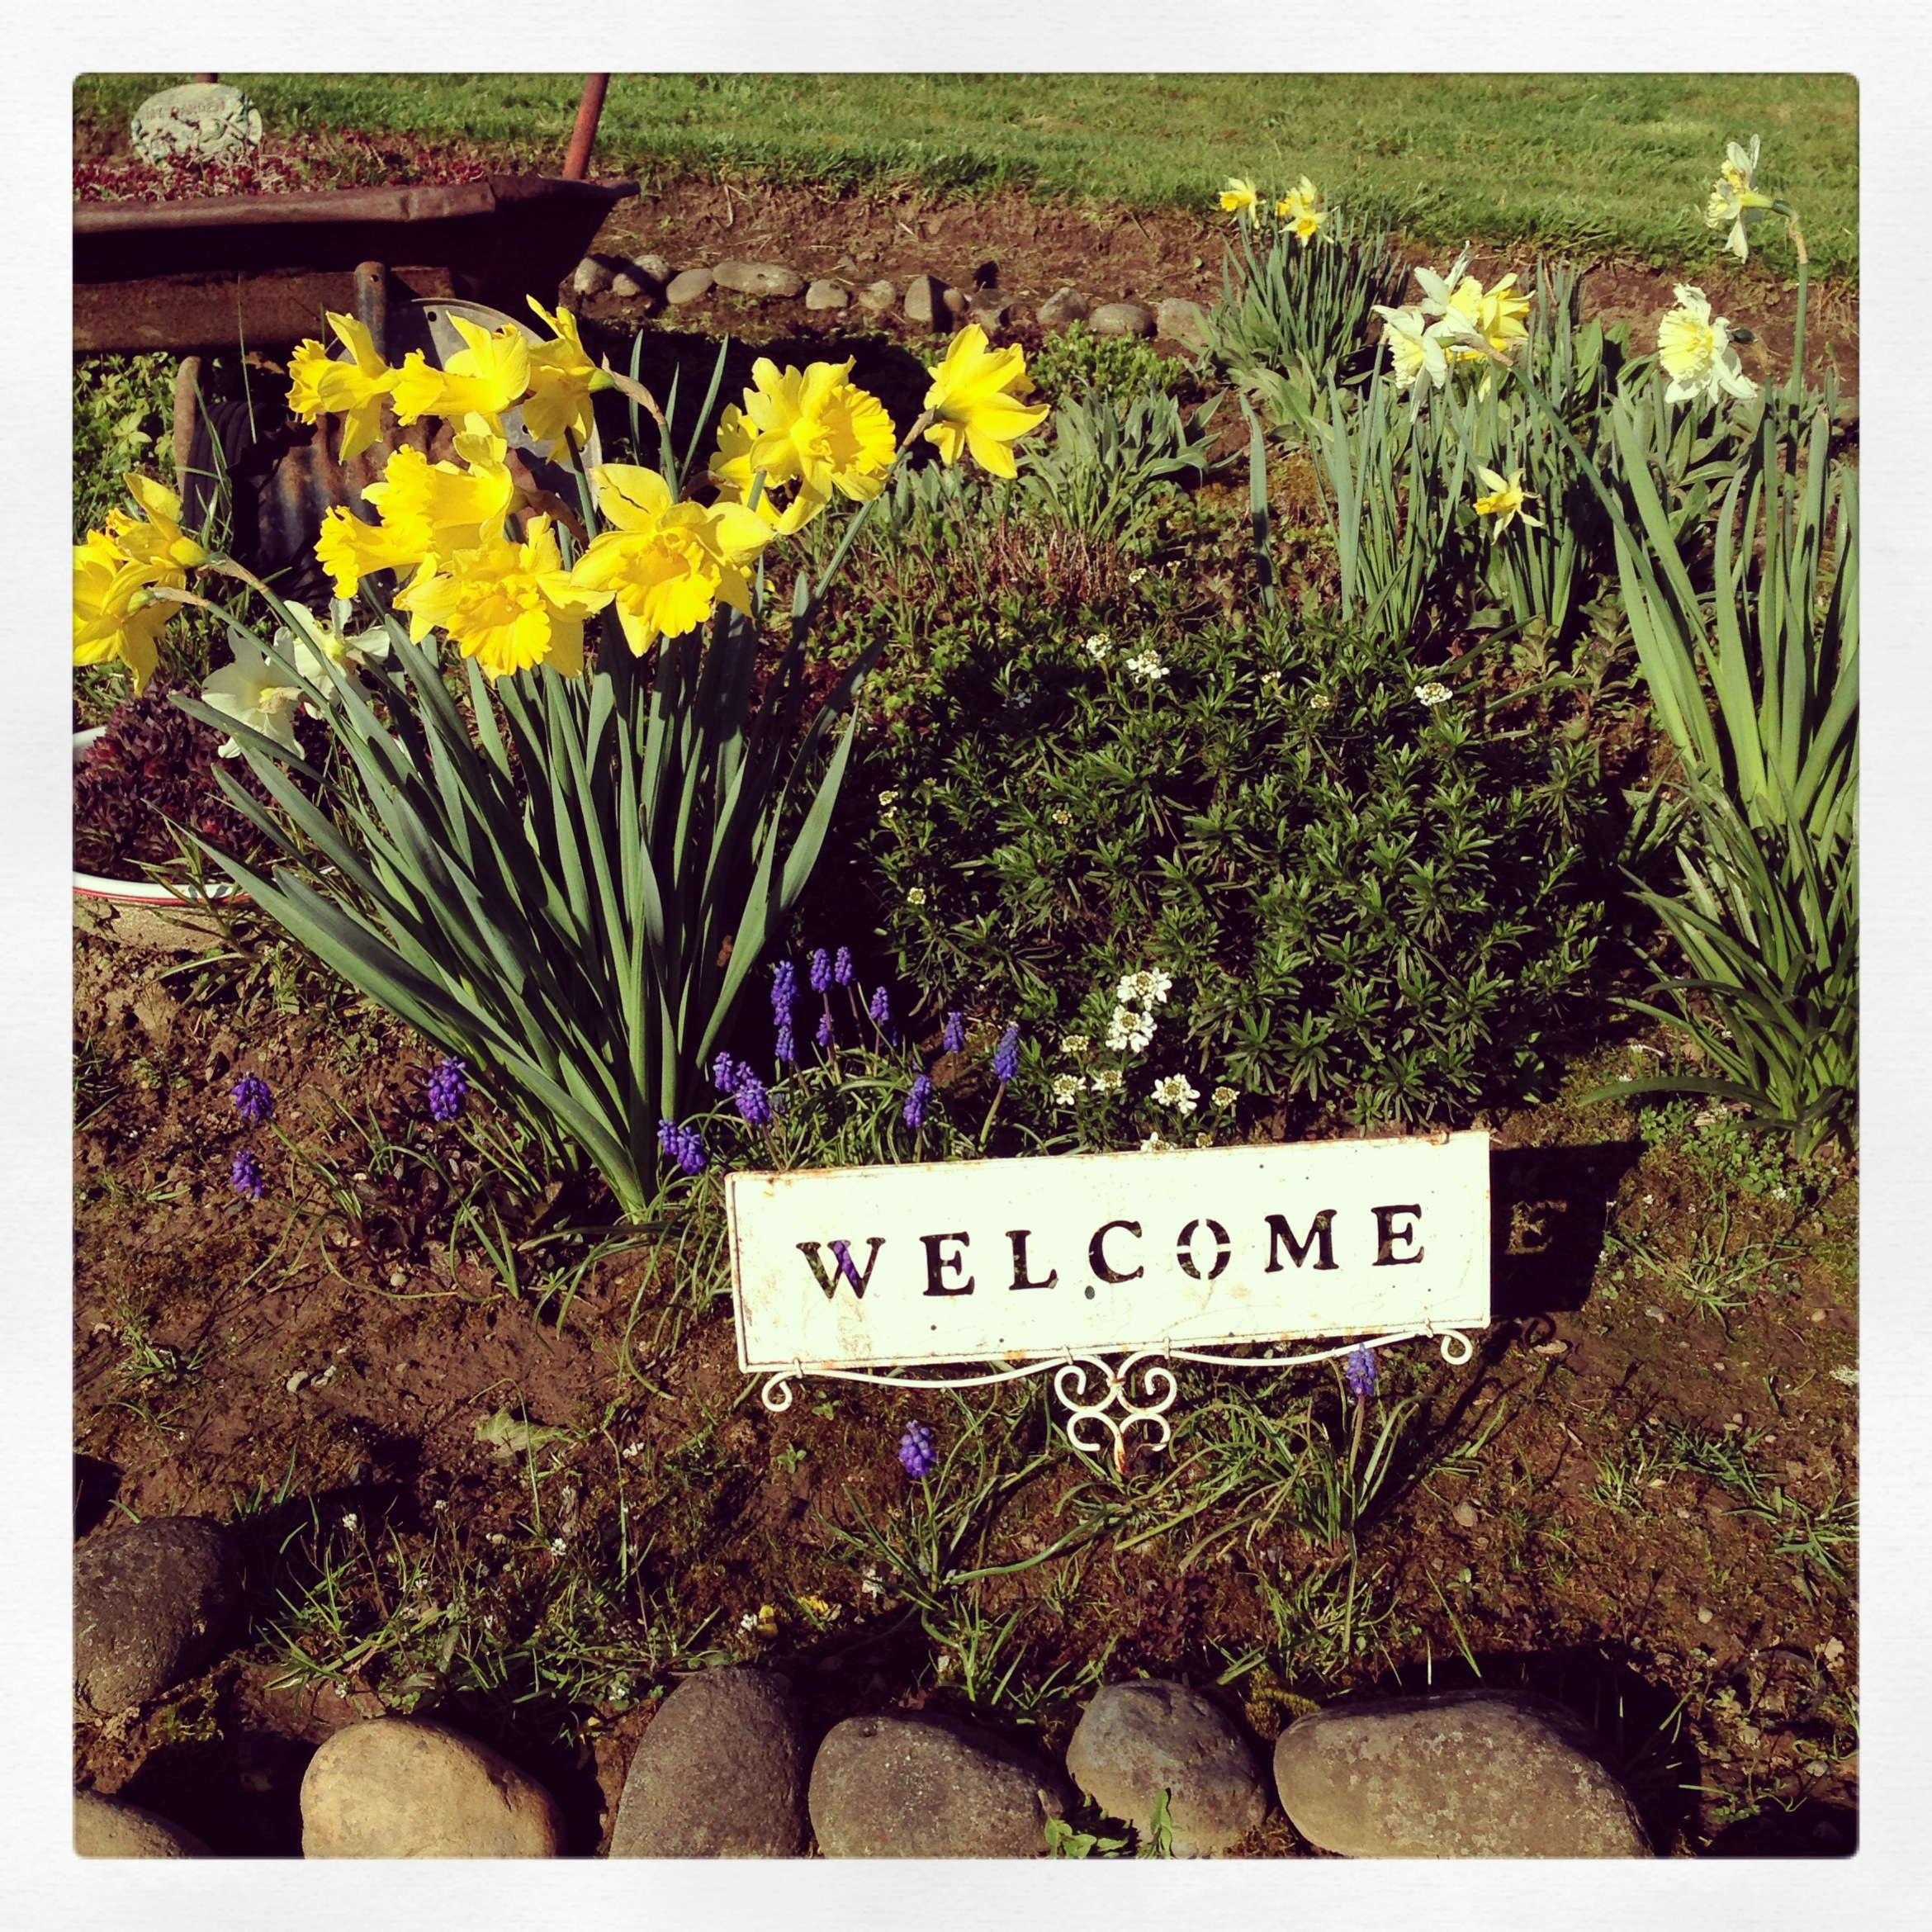 Welcome Spring flowers!